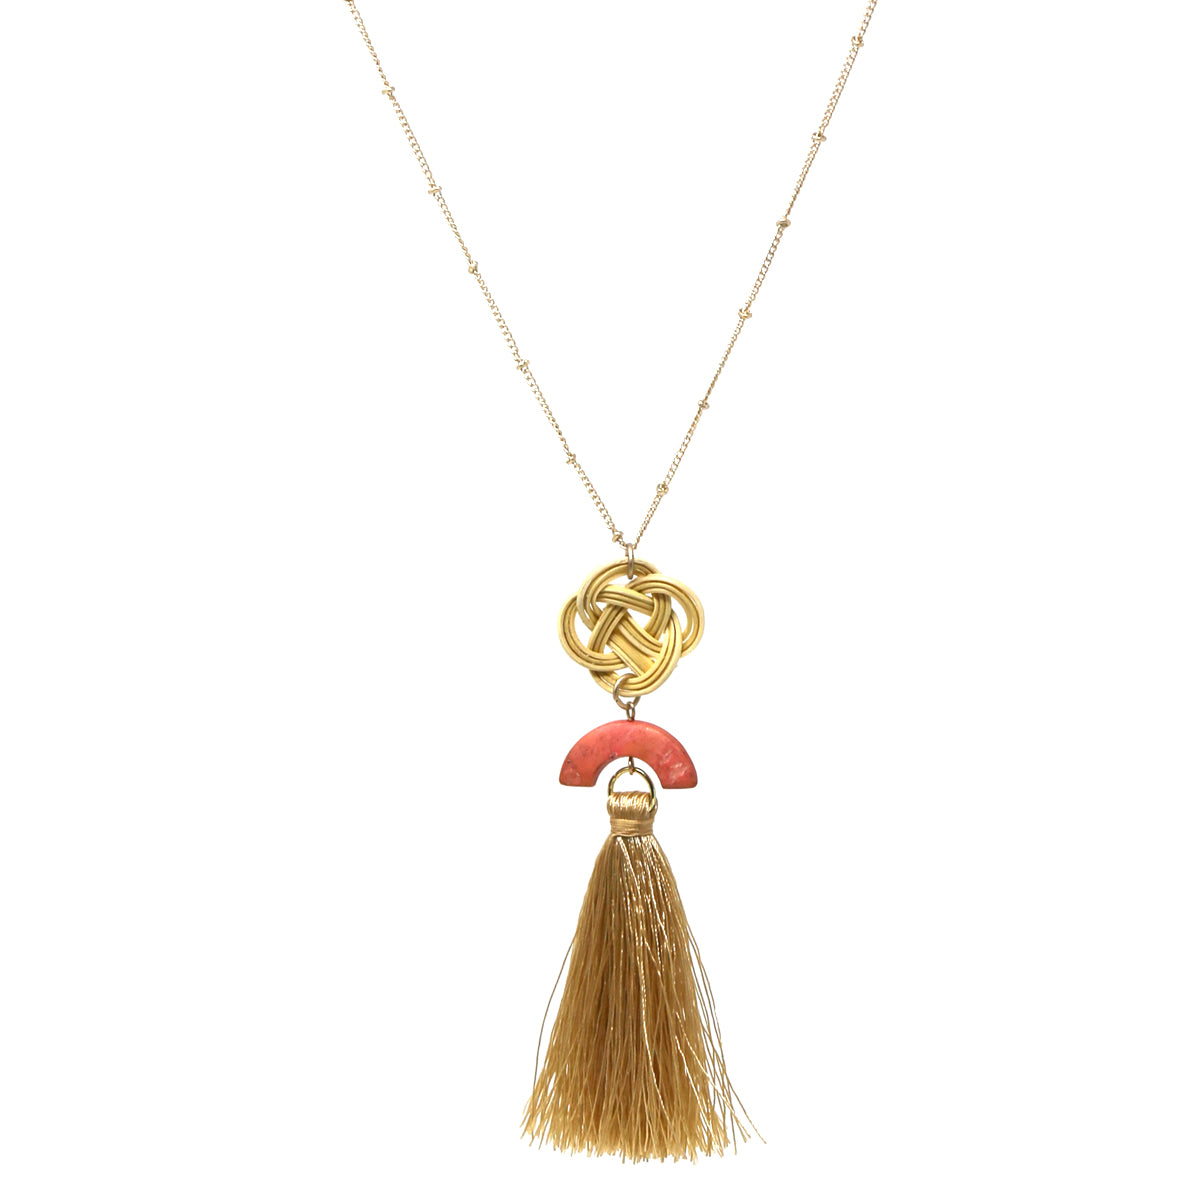 Knotted Rattan Wood Pendant Tassel Drop Long Necklace